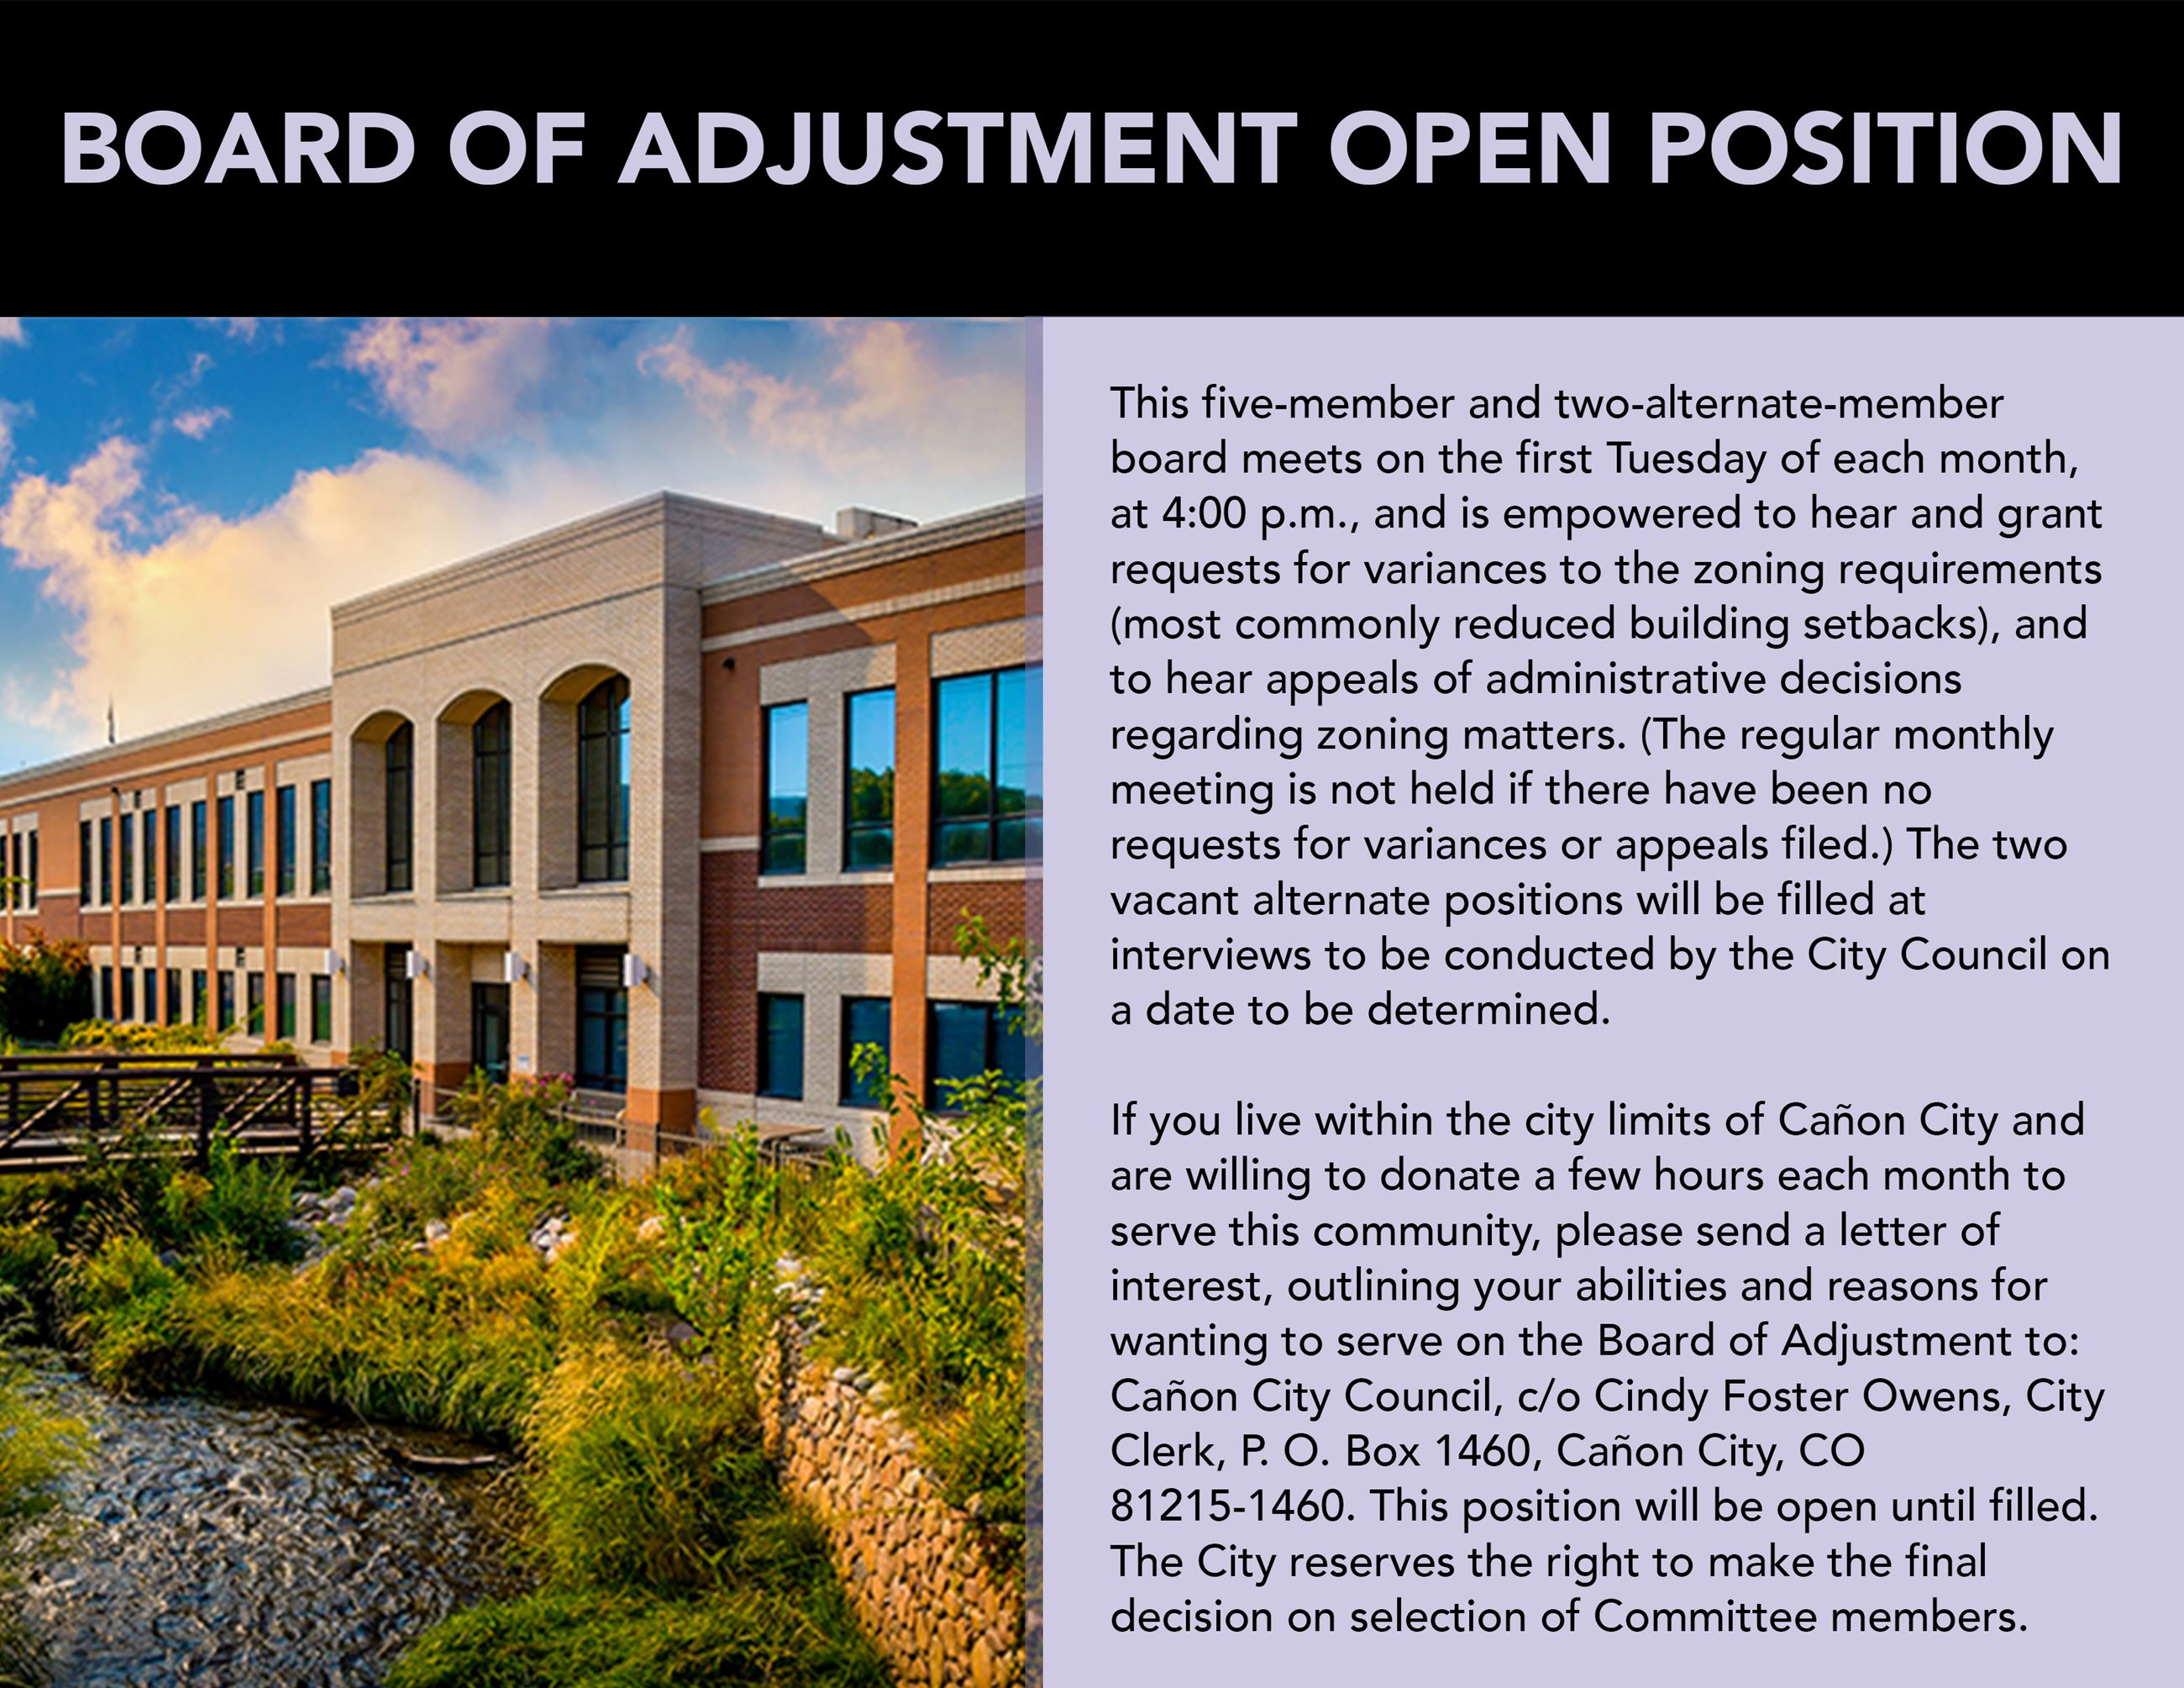 Board of Adjustment opening annoucement